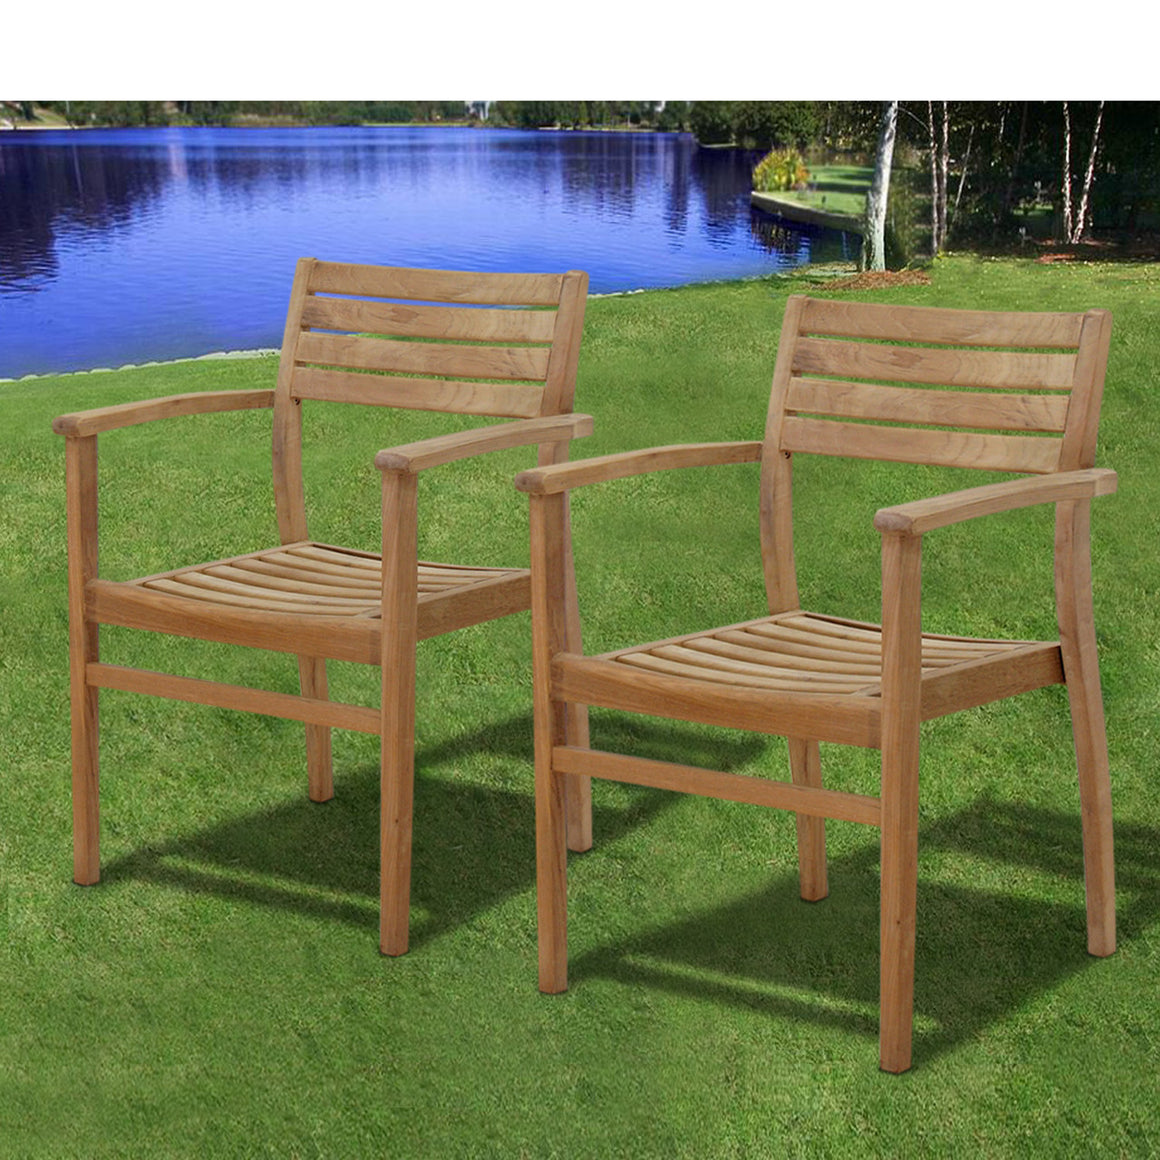 Boyd 9 Piece Teak Rectangular Patio Dining Set , International Home Miami- grayburd